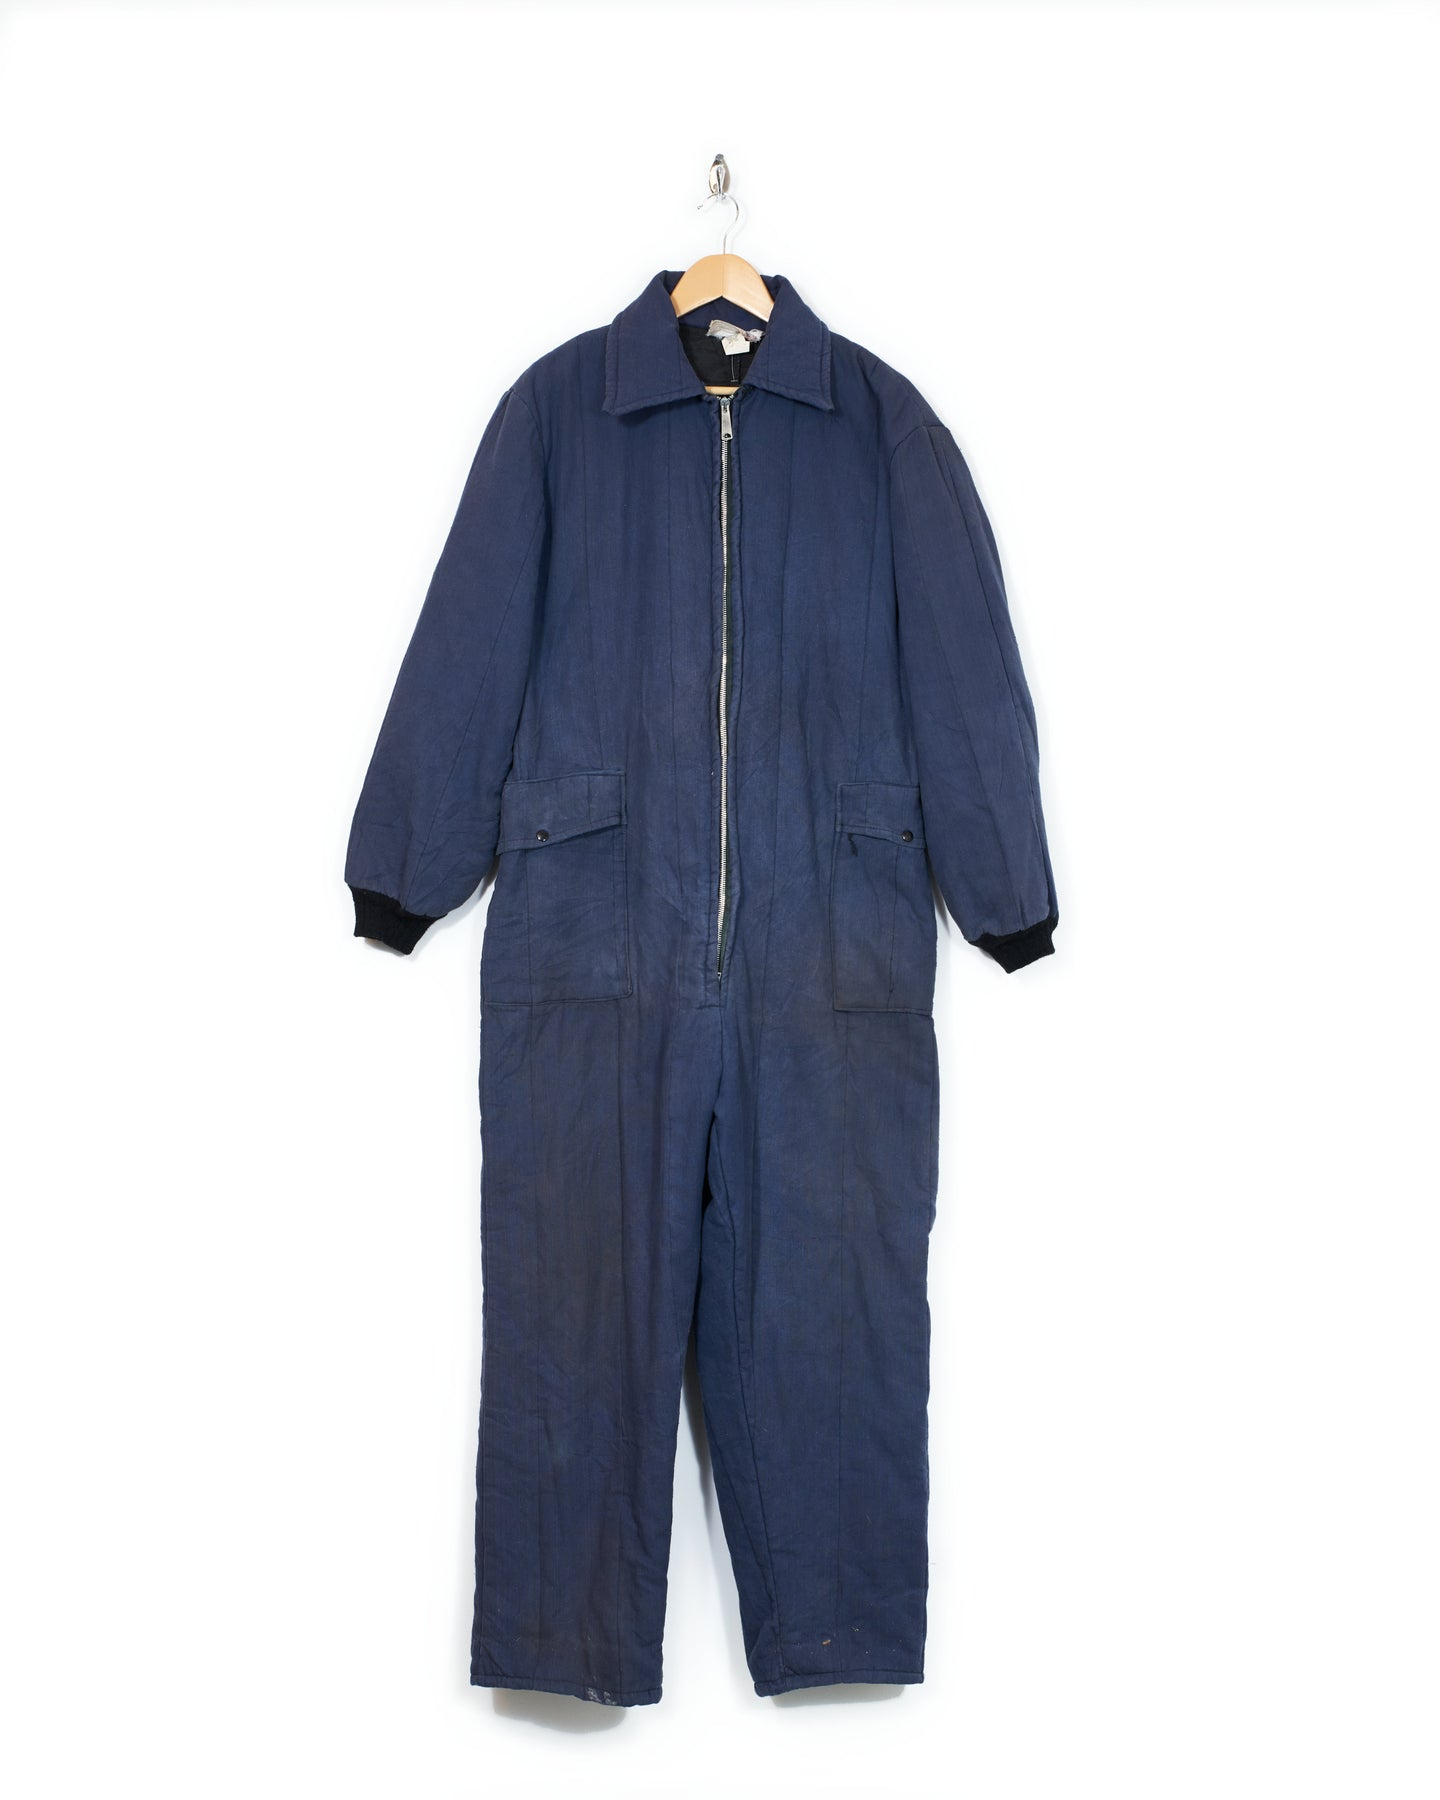 Zipped Lined Coveralls